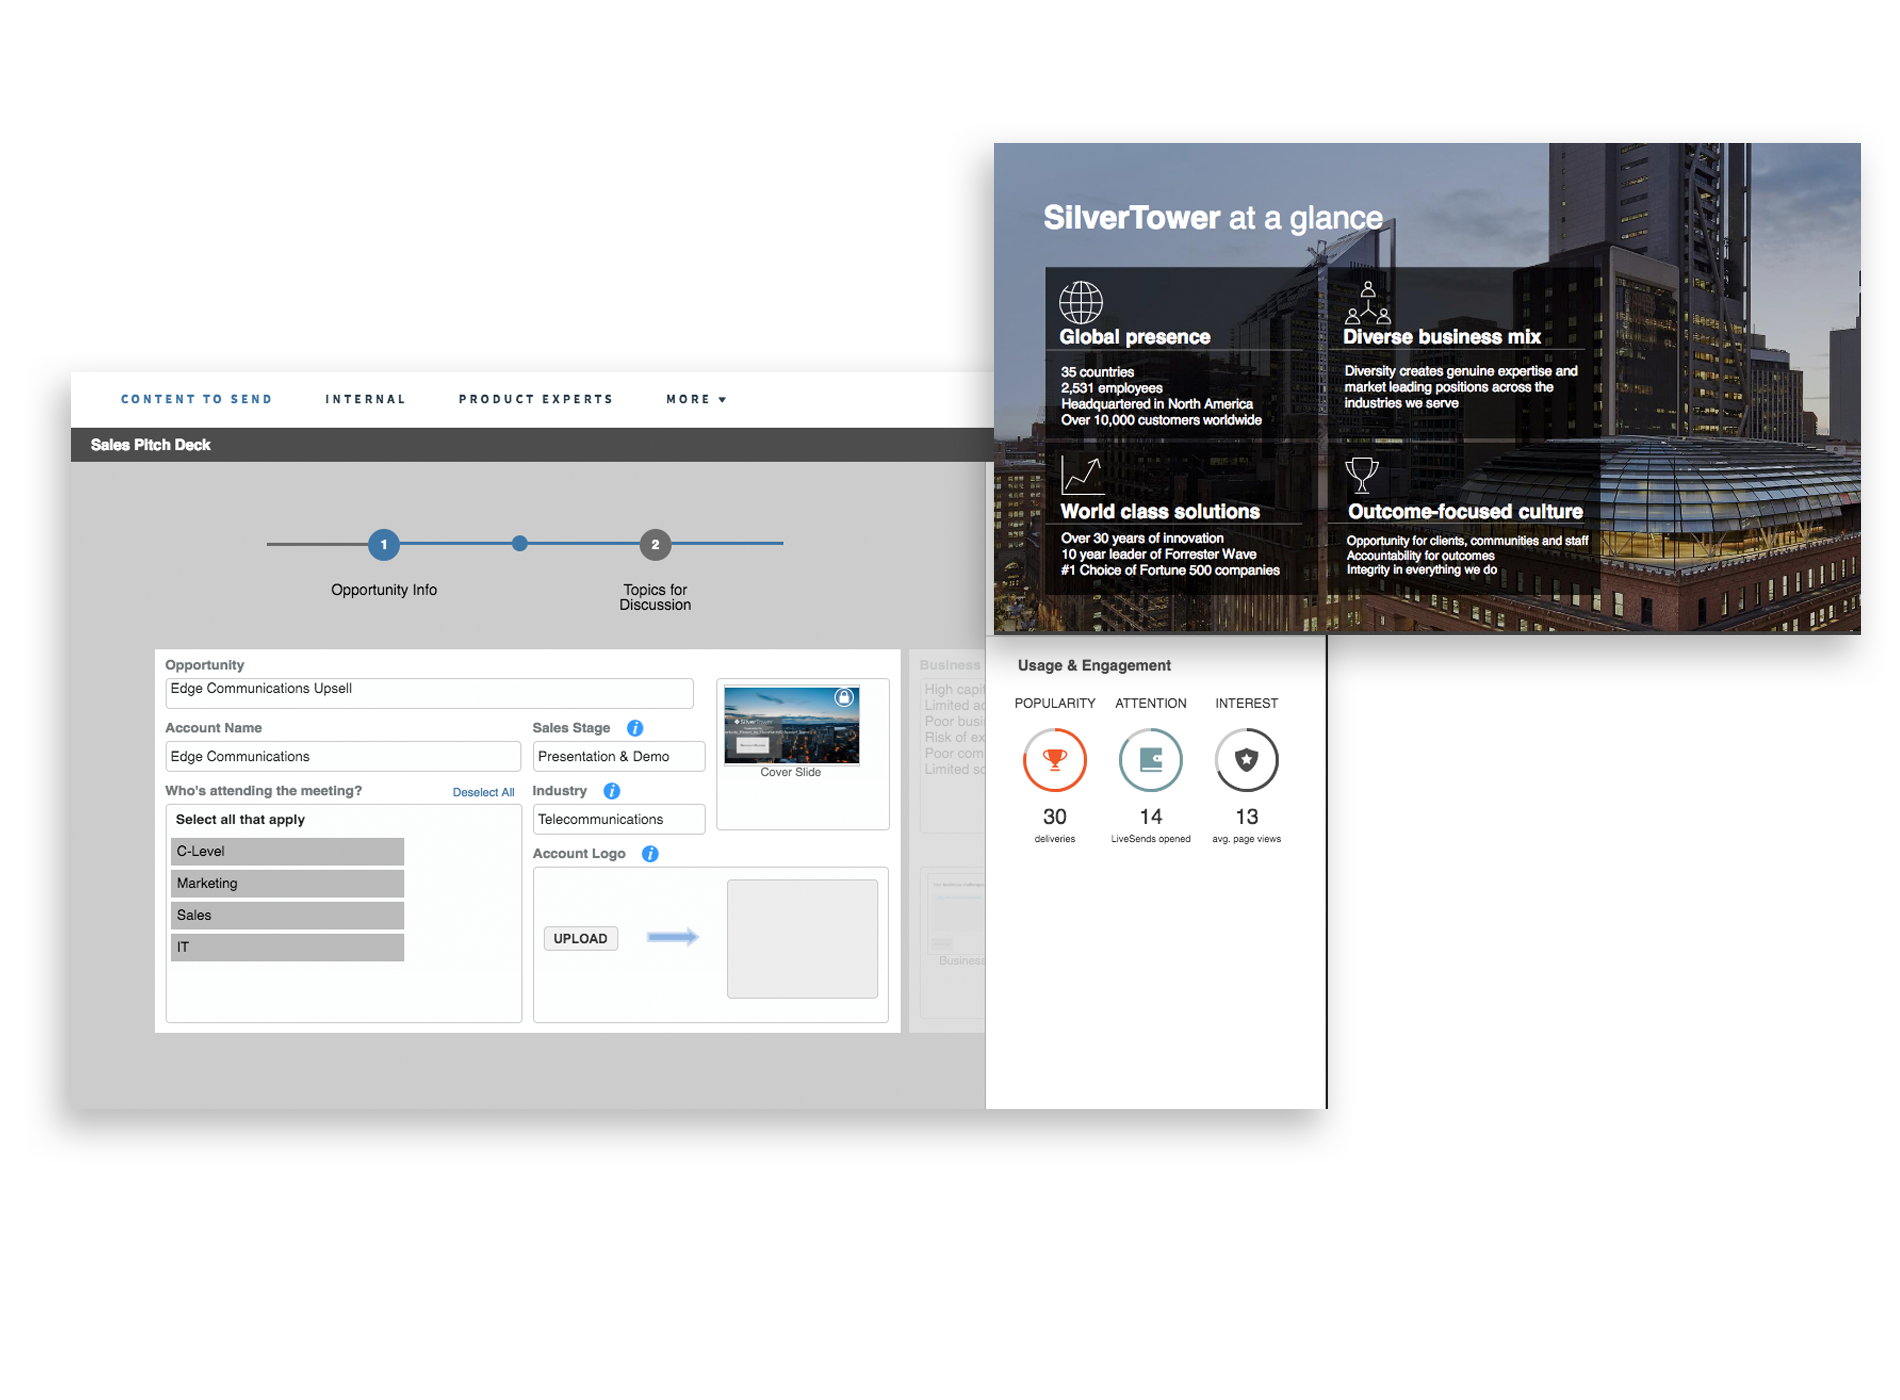 Integrations_CRM_Opportunity-Personalization_New